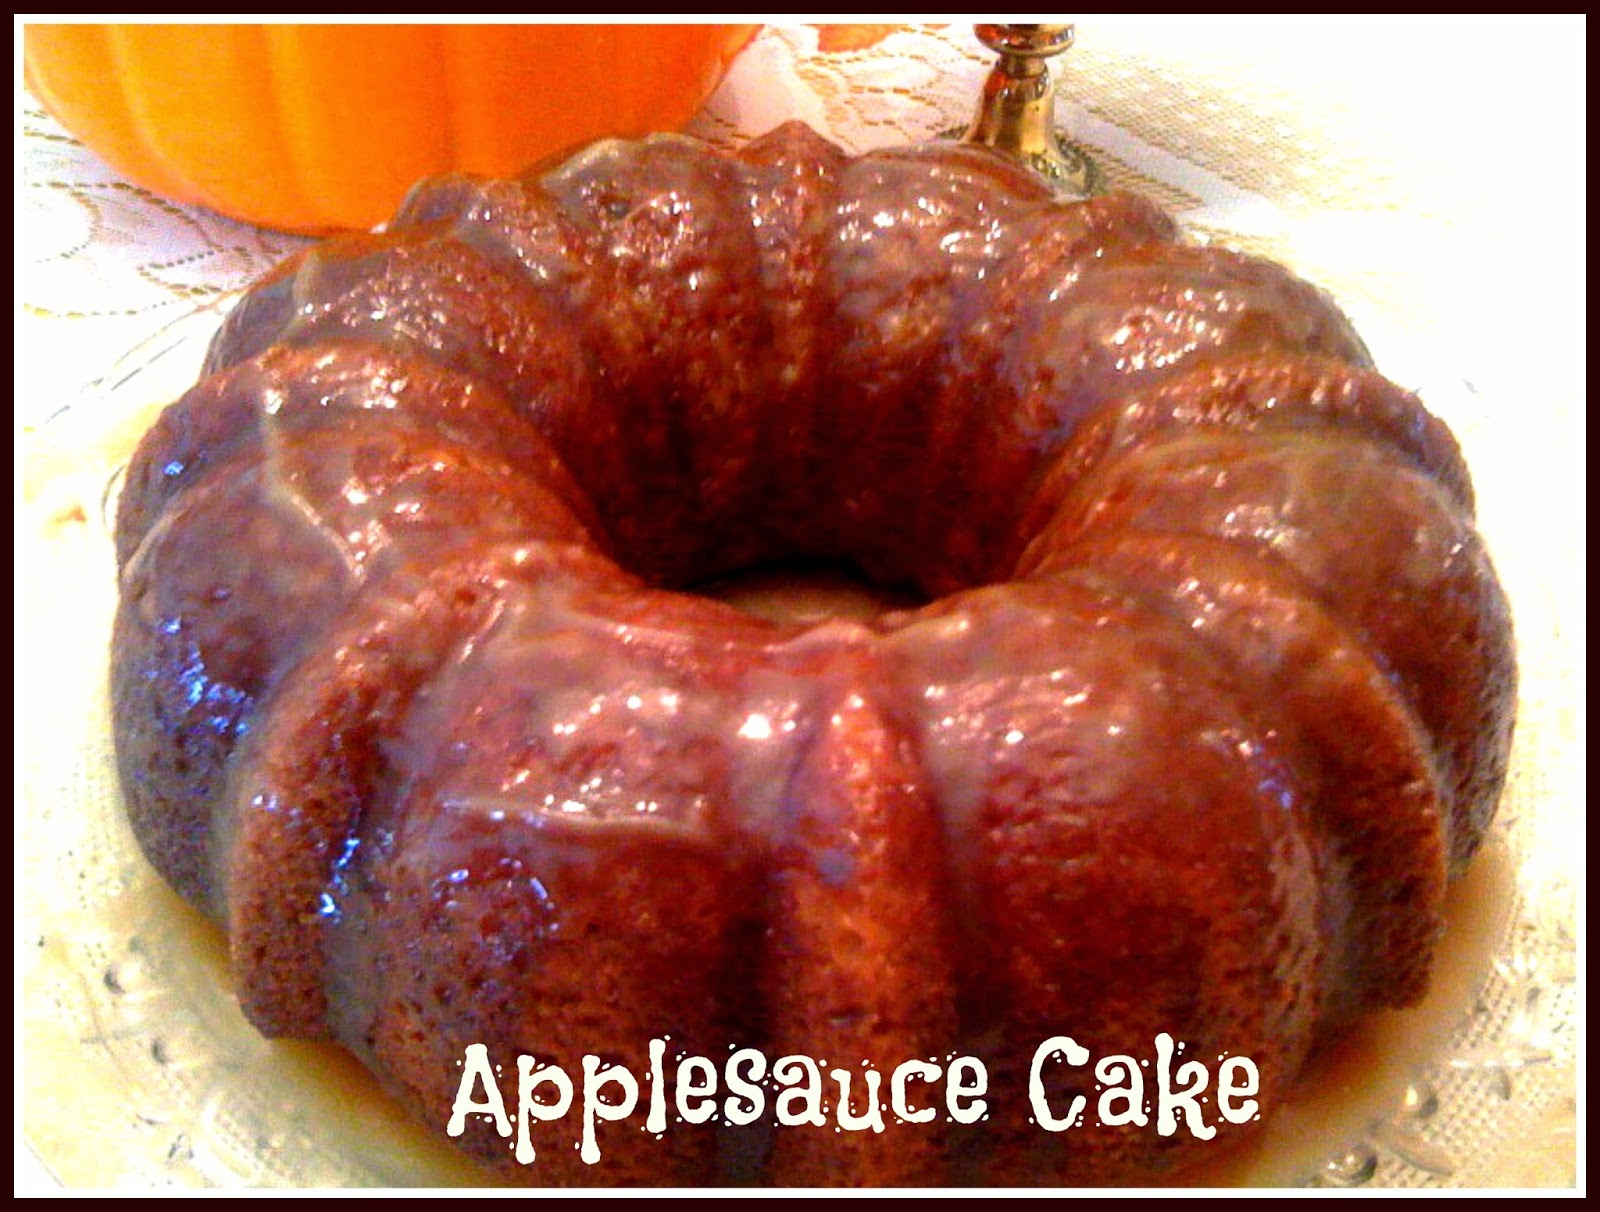 Applesauce Cake with Buttermilk Glaze!